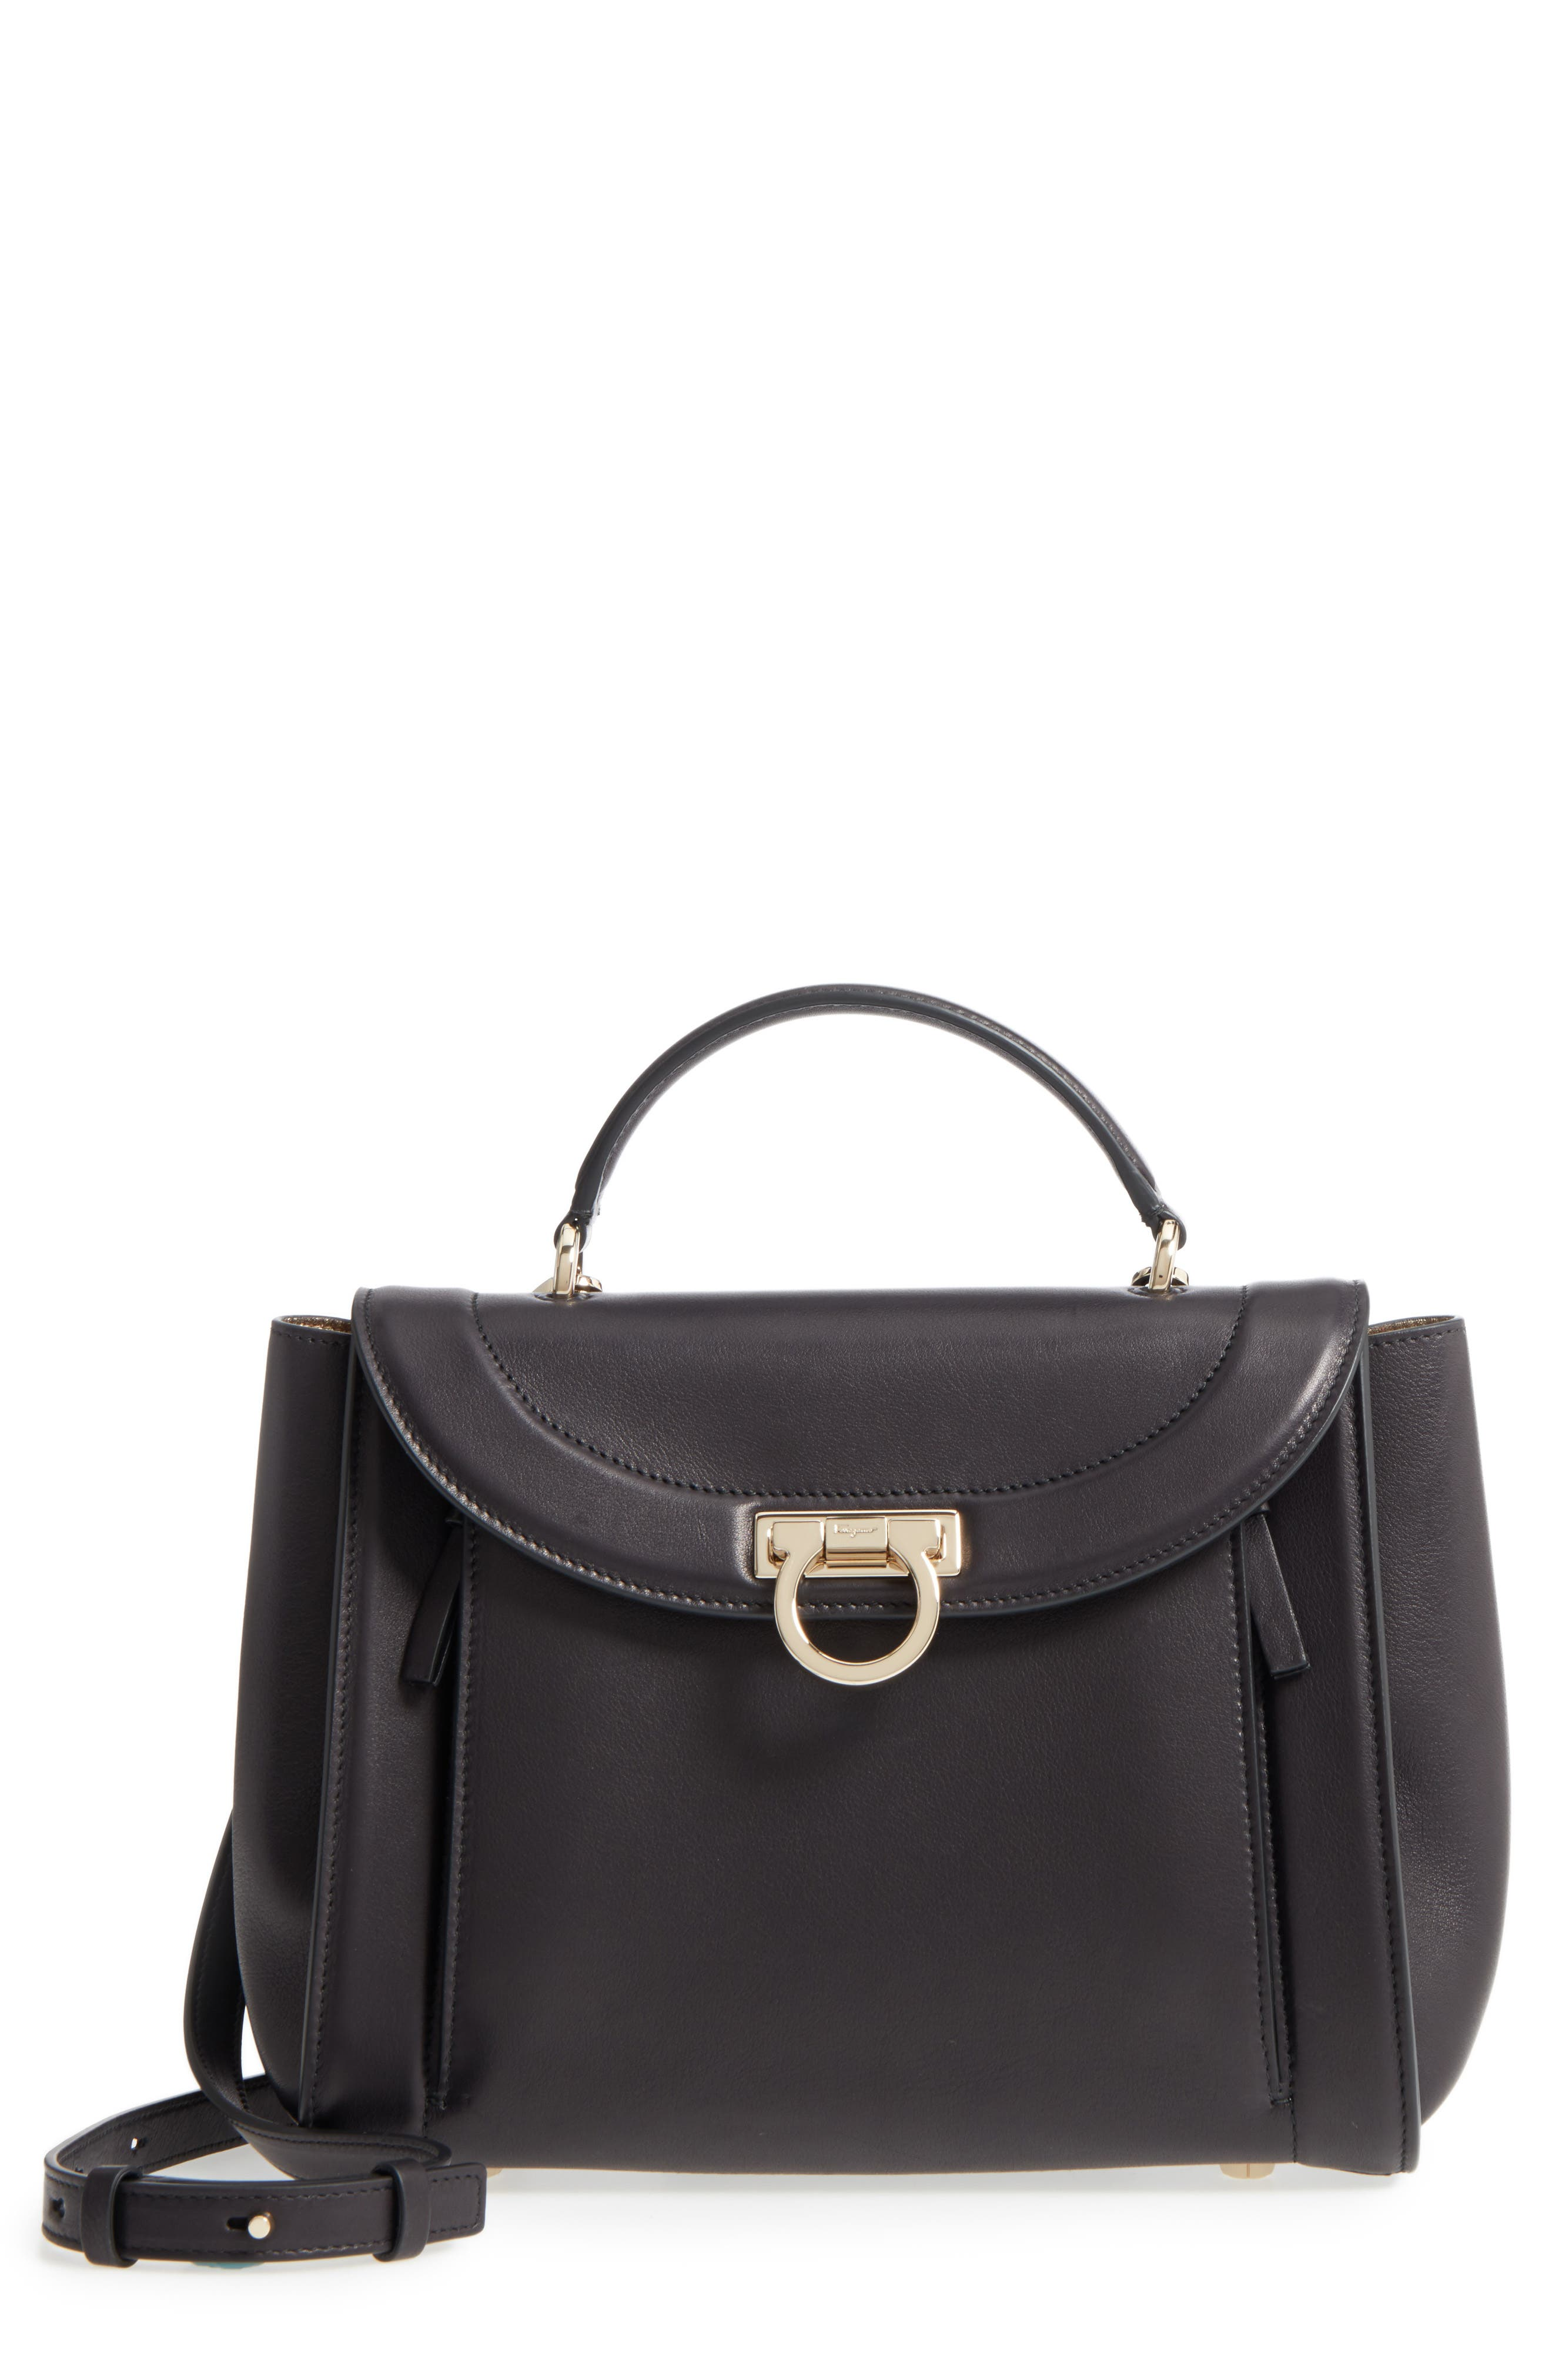 Small Sophia Leather Satchel,                             Main thumbnail 1, color,                             Nero/ Agento/ New Bianco